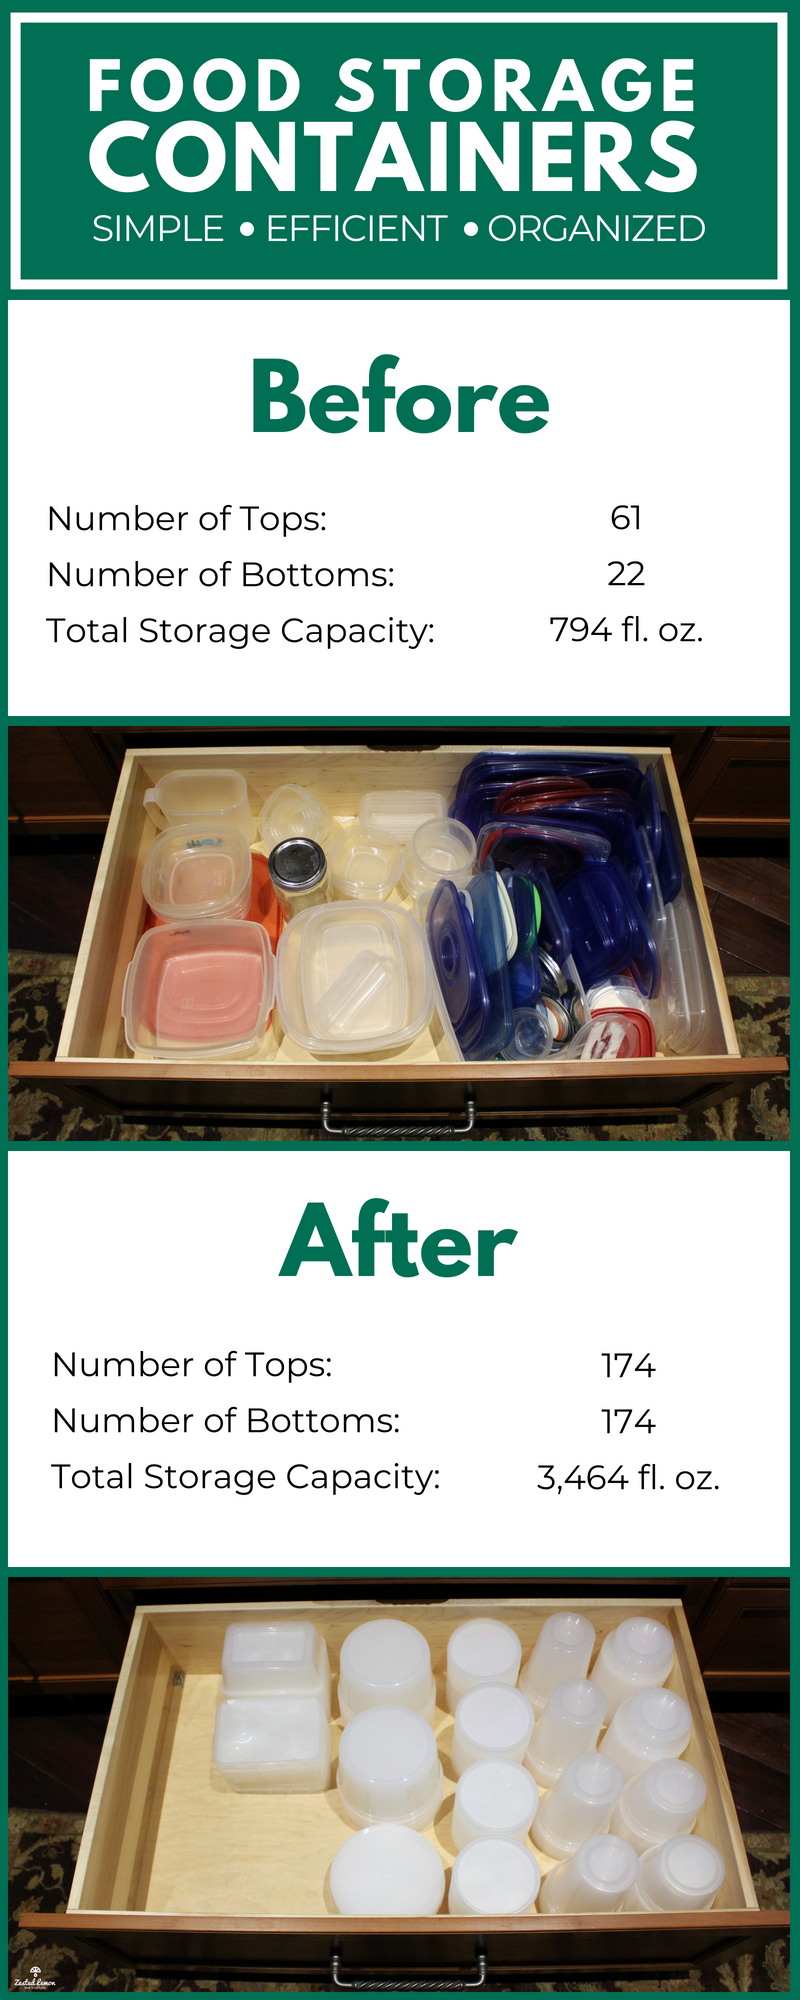 Food Storage Containers Before & After.png